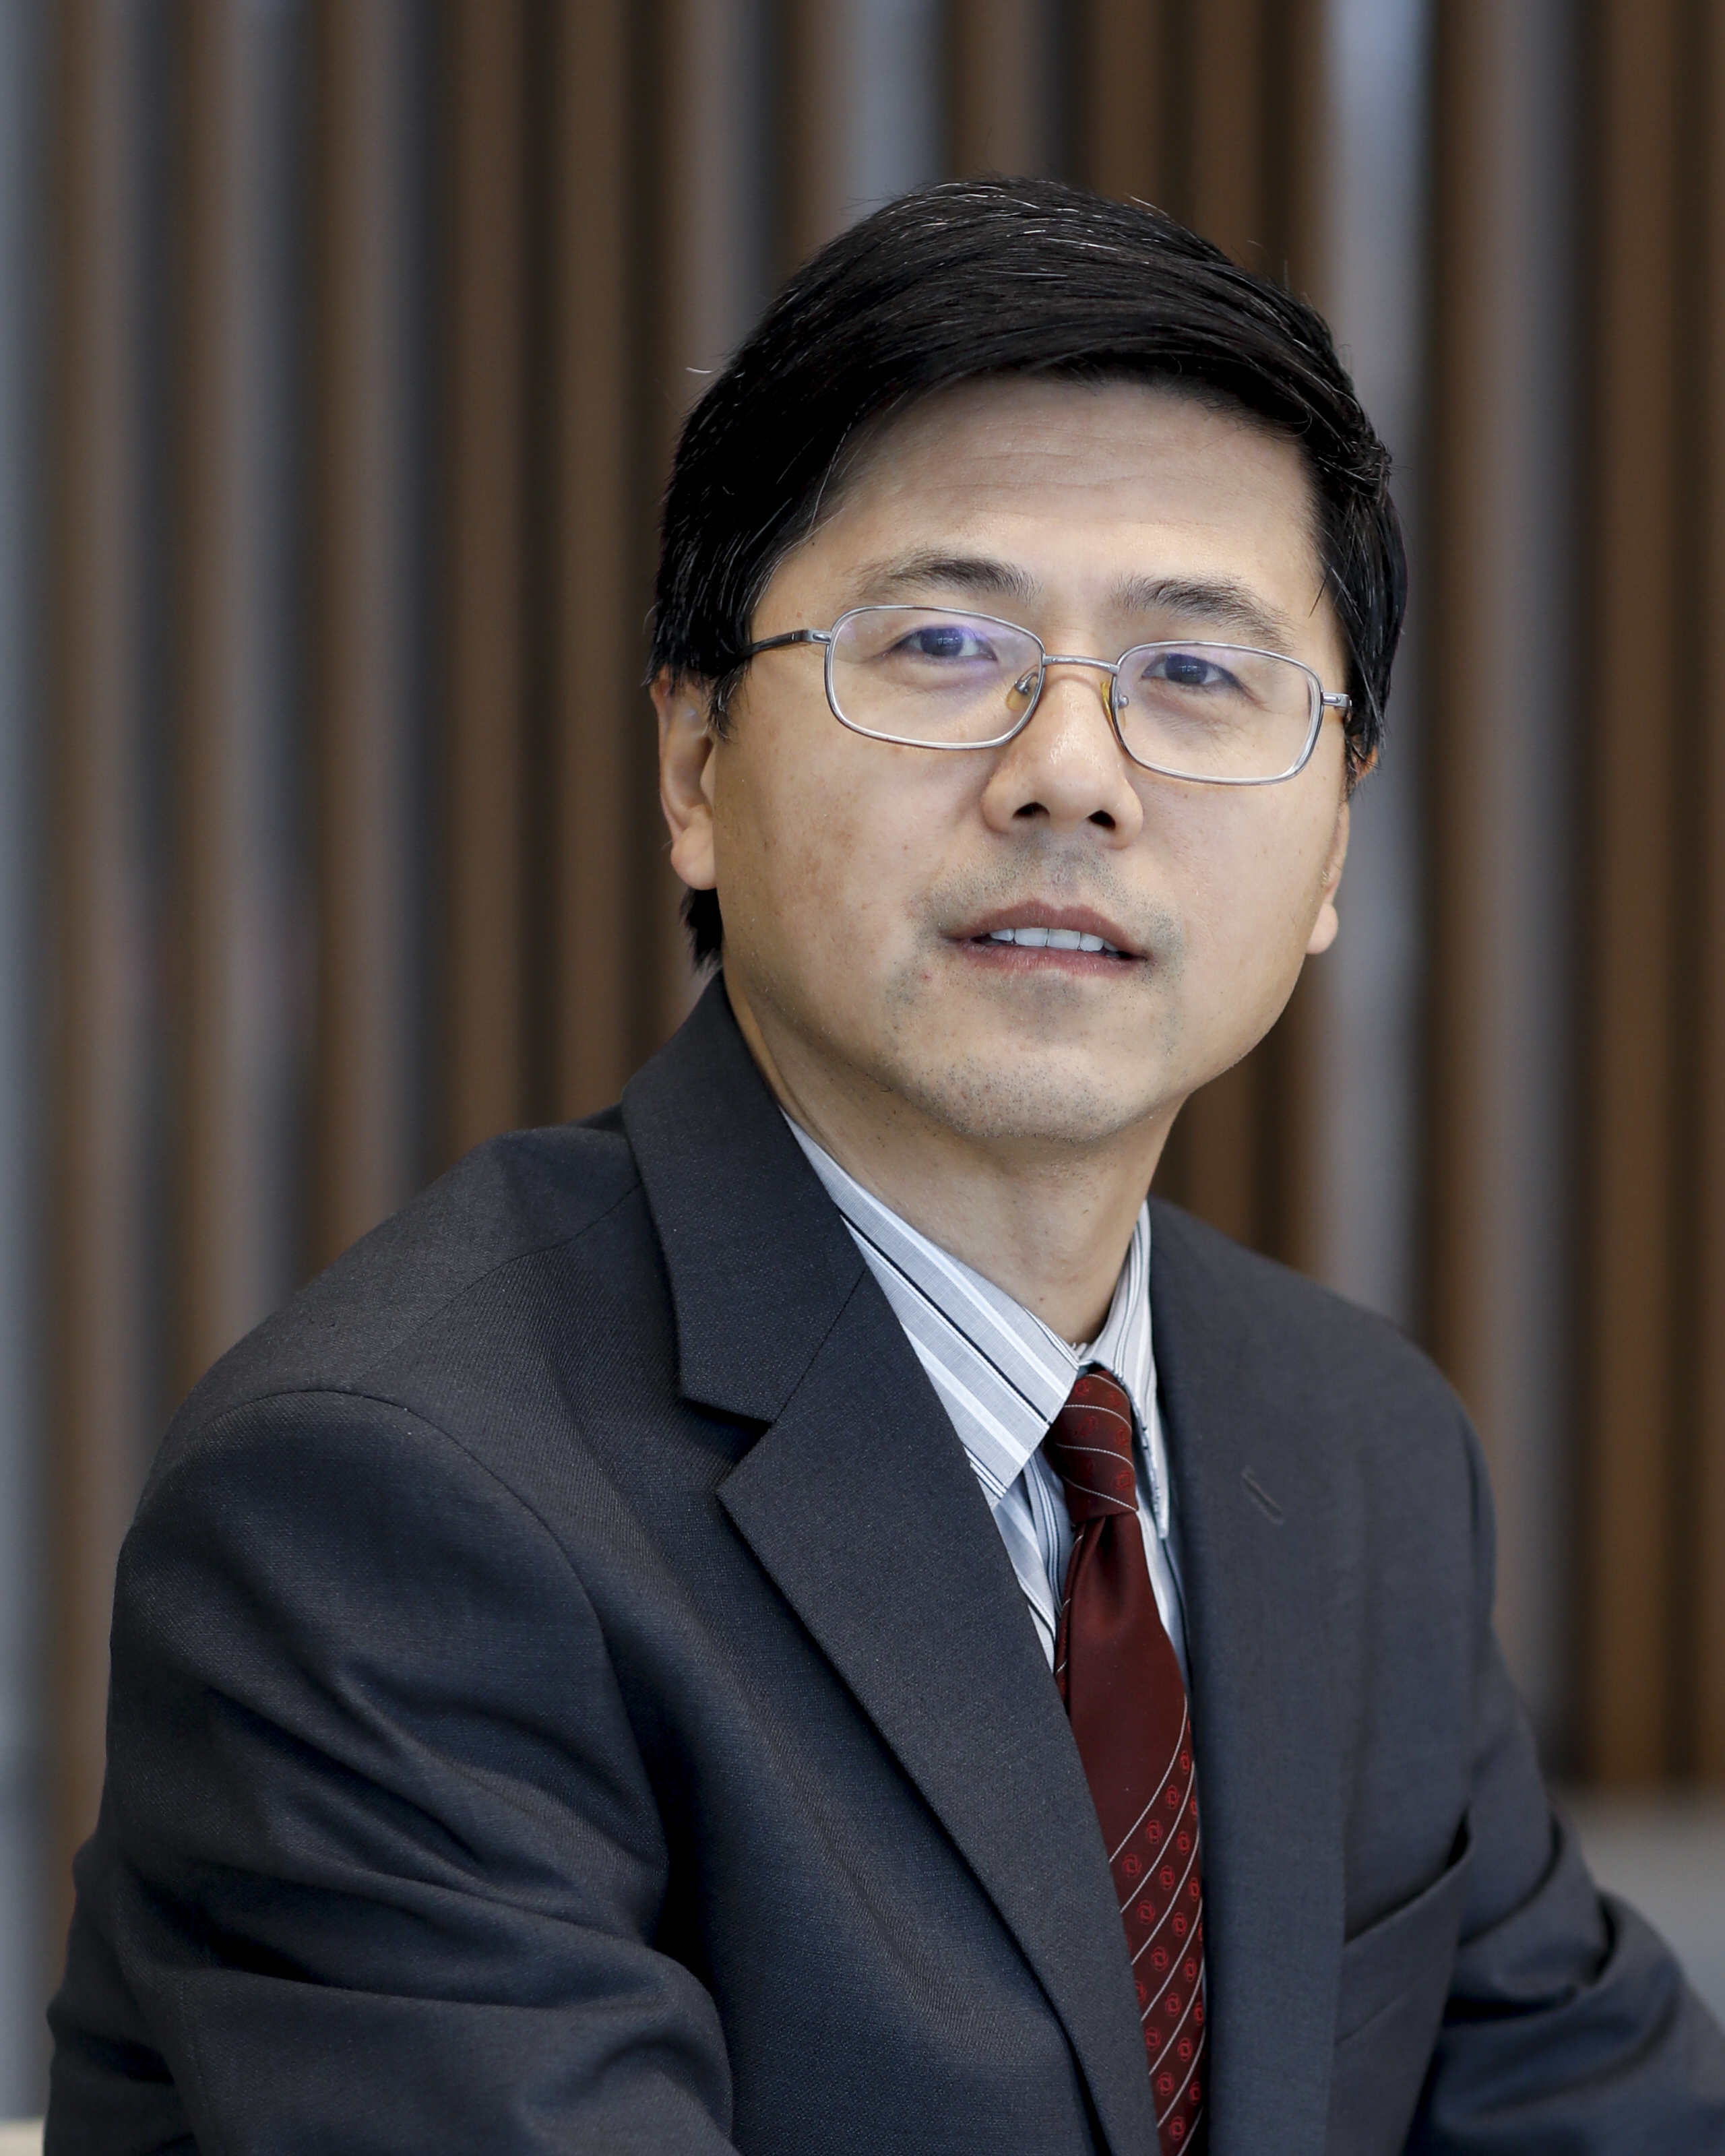 Dr. Xinqi Chen